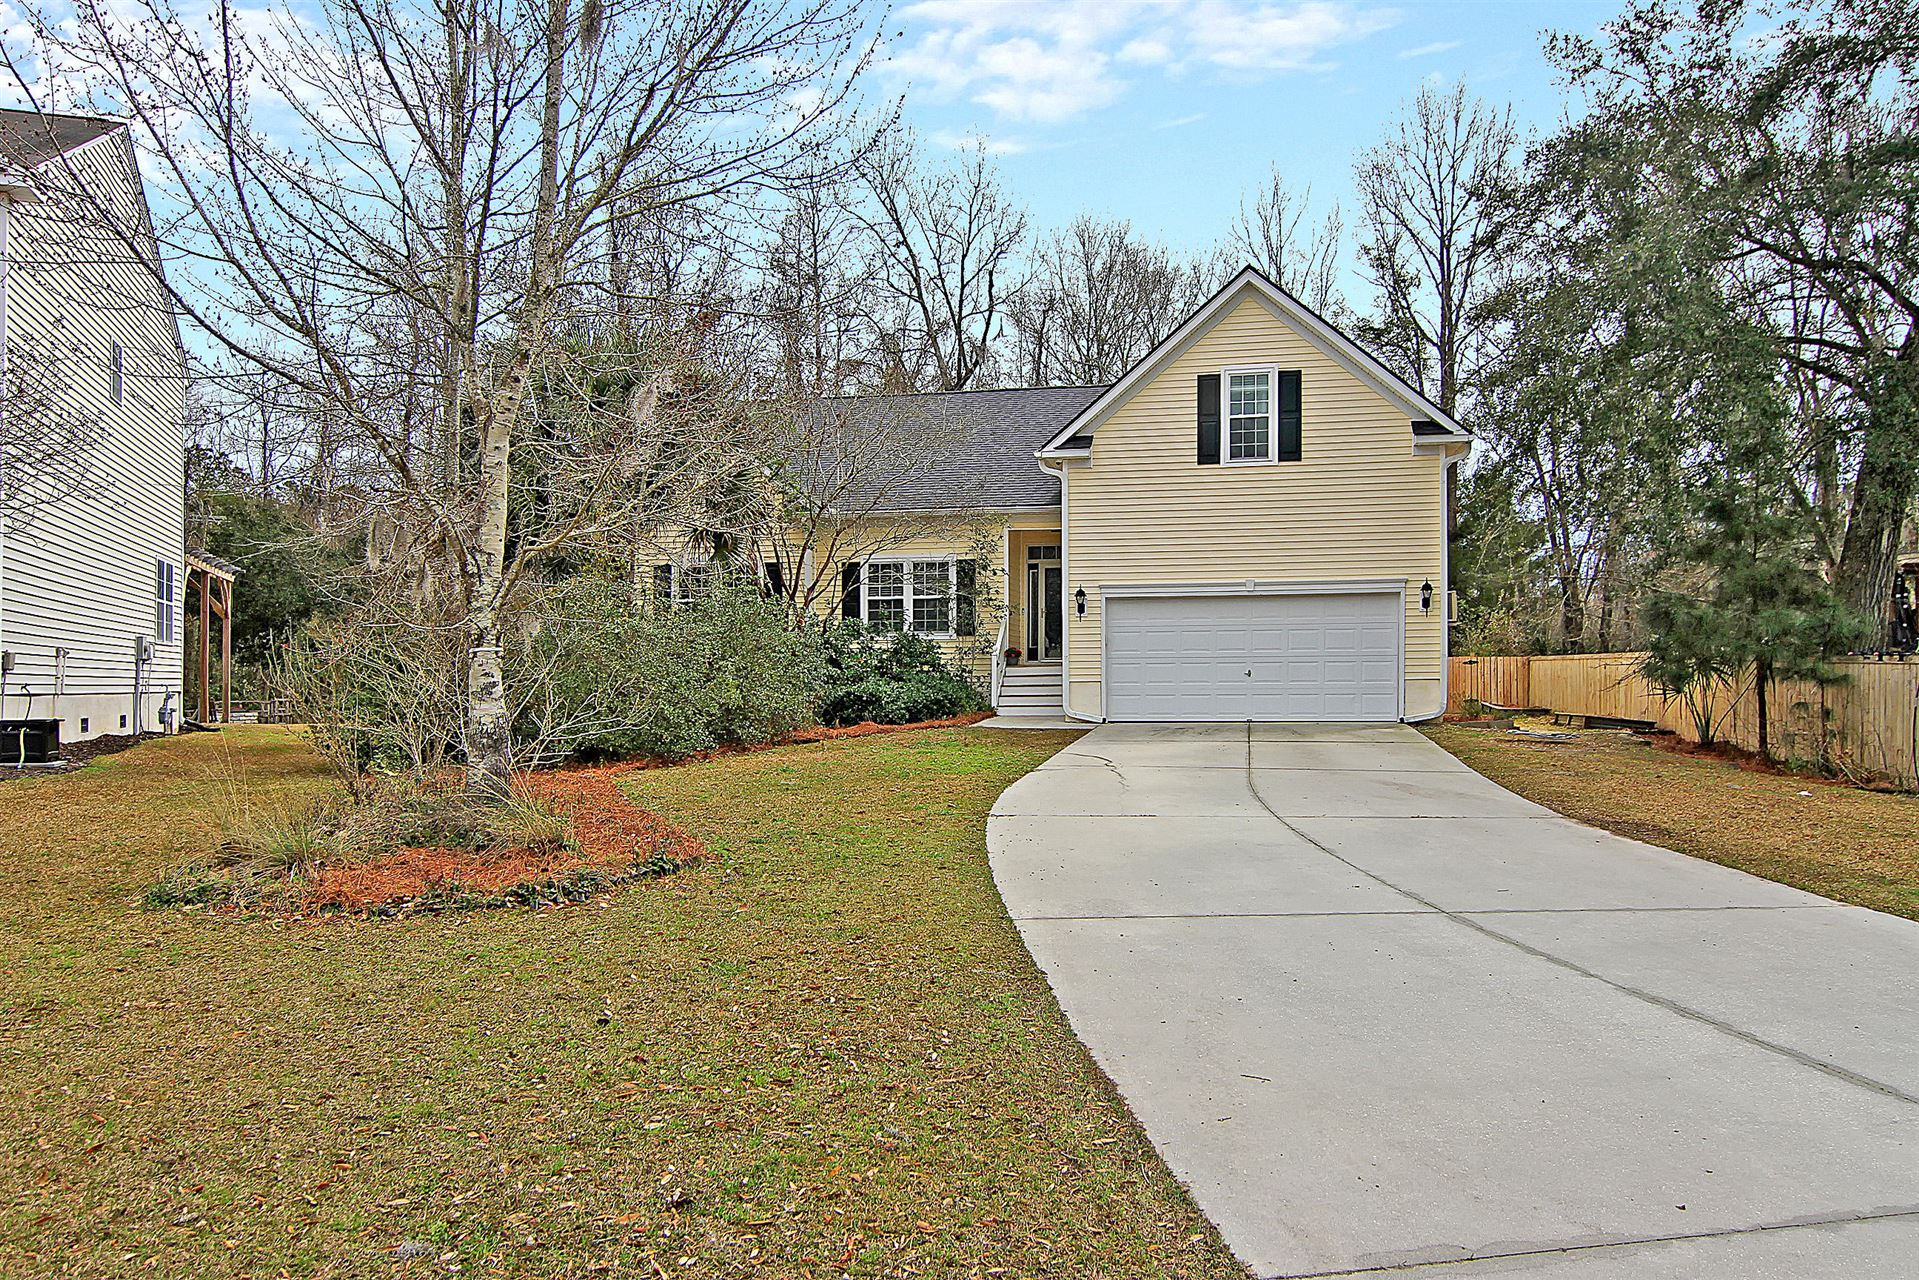 Photo of 2262 Red Fern Lane, Mount Pleasant, SC 29466 (MLS # 21005202)